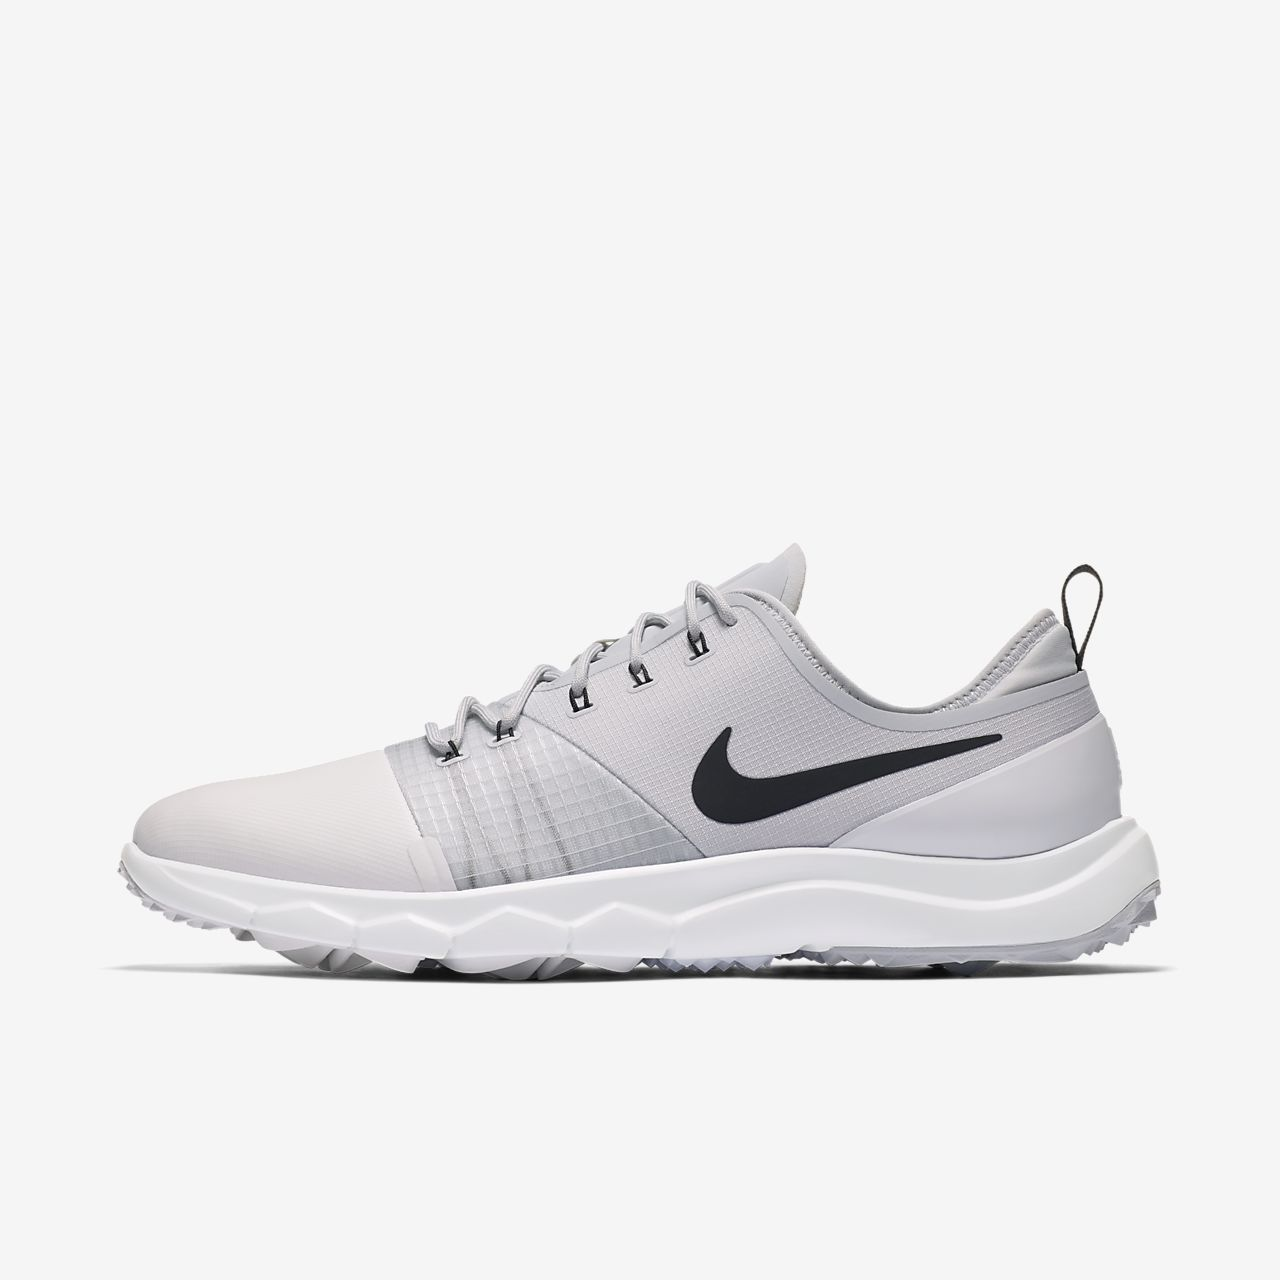 Nike FI Impact 3 Women's Golf Shoe